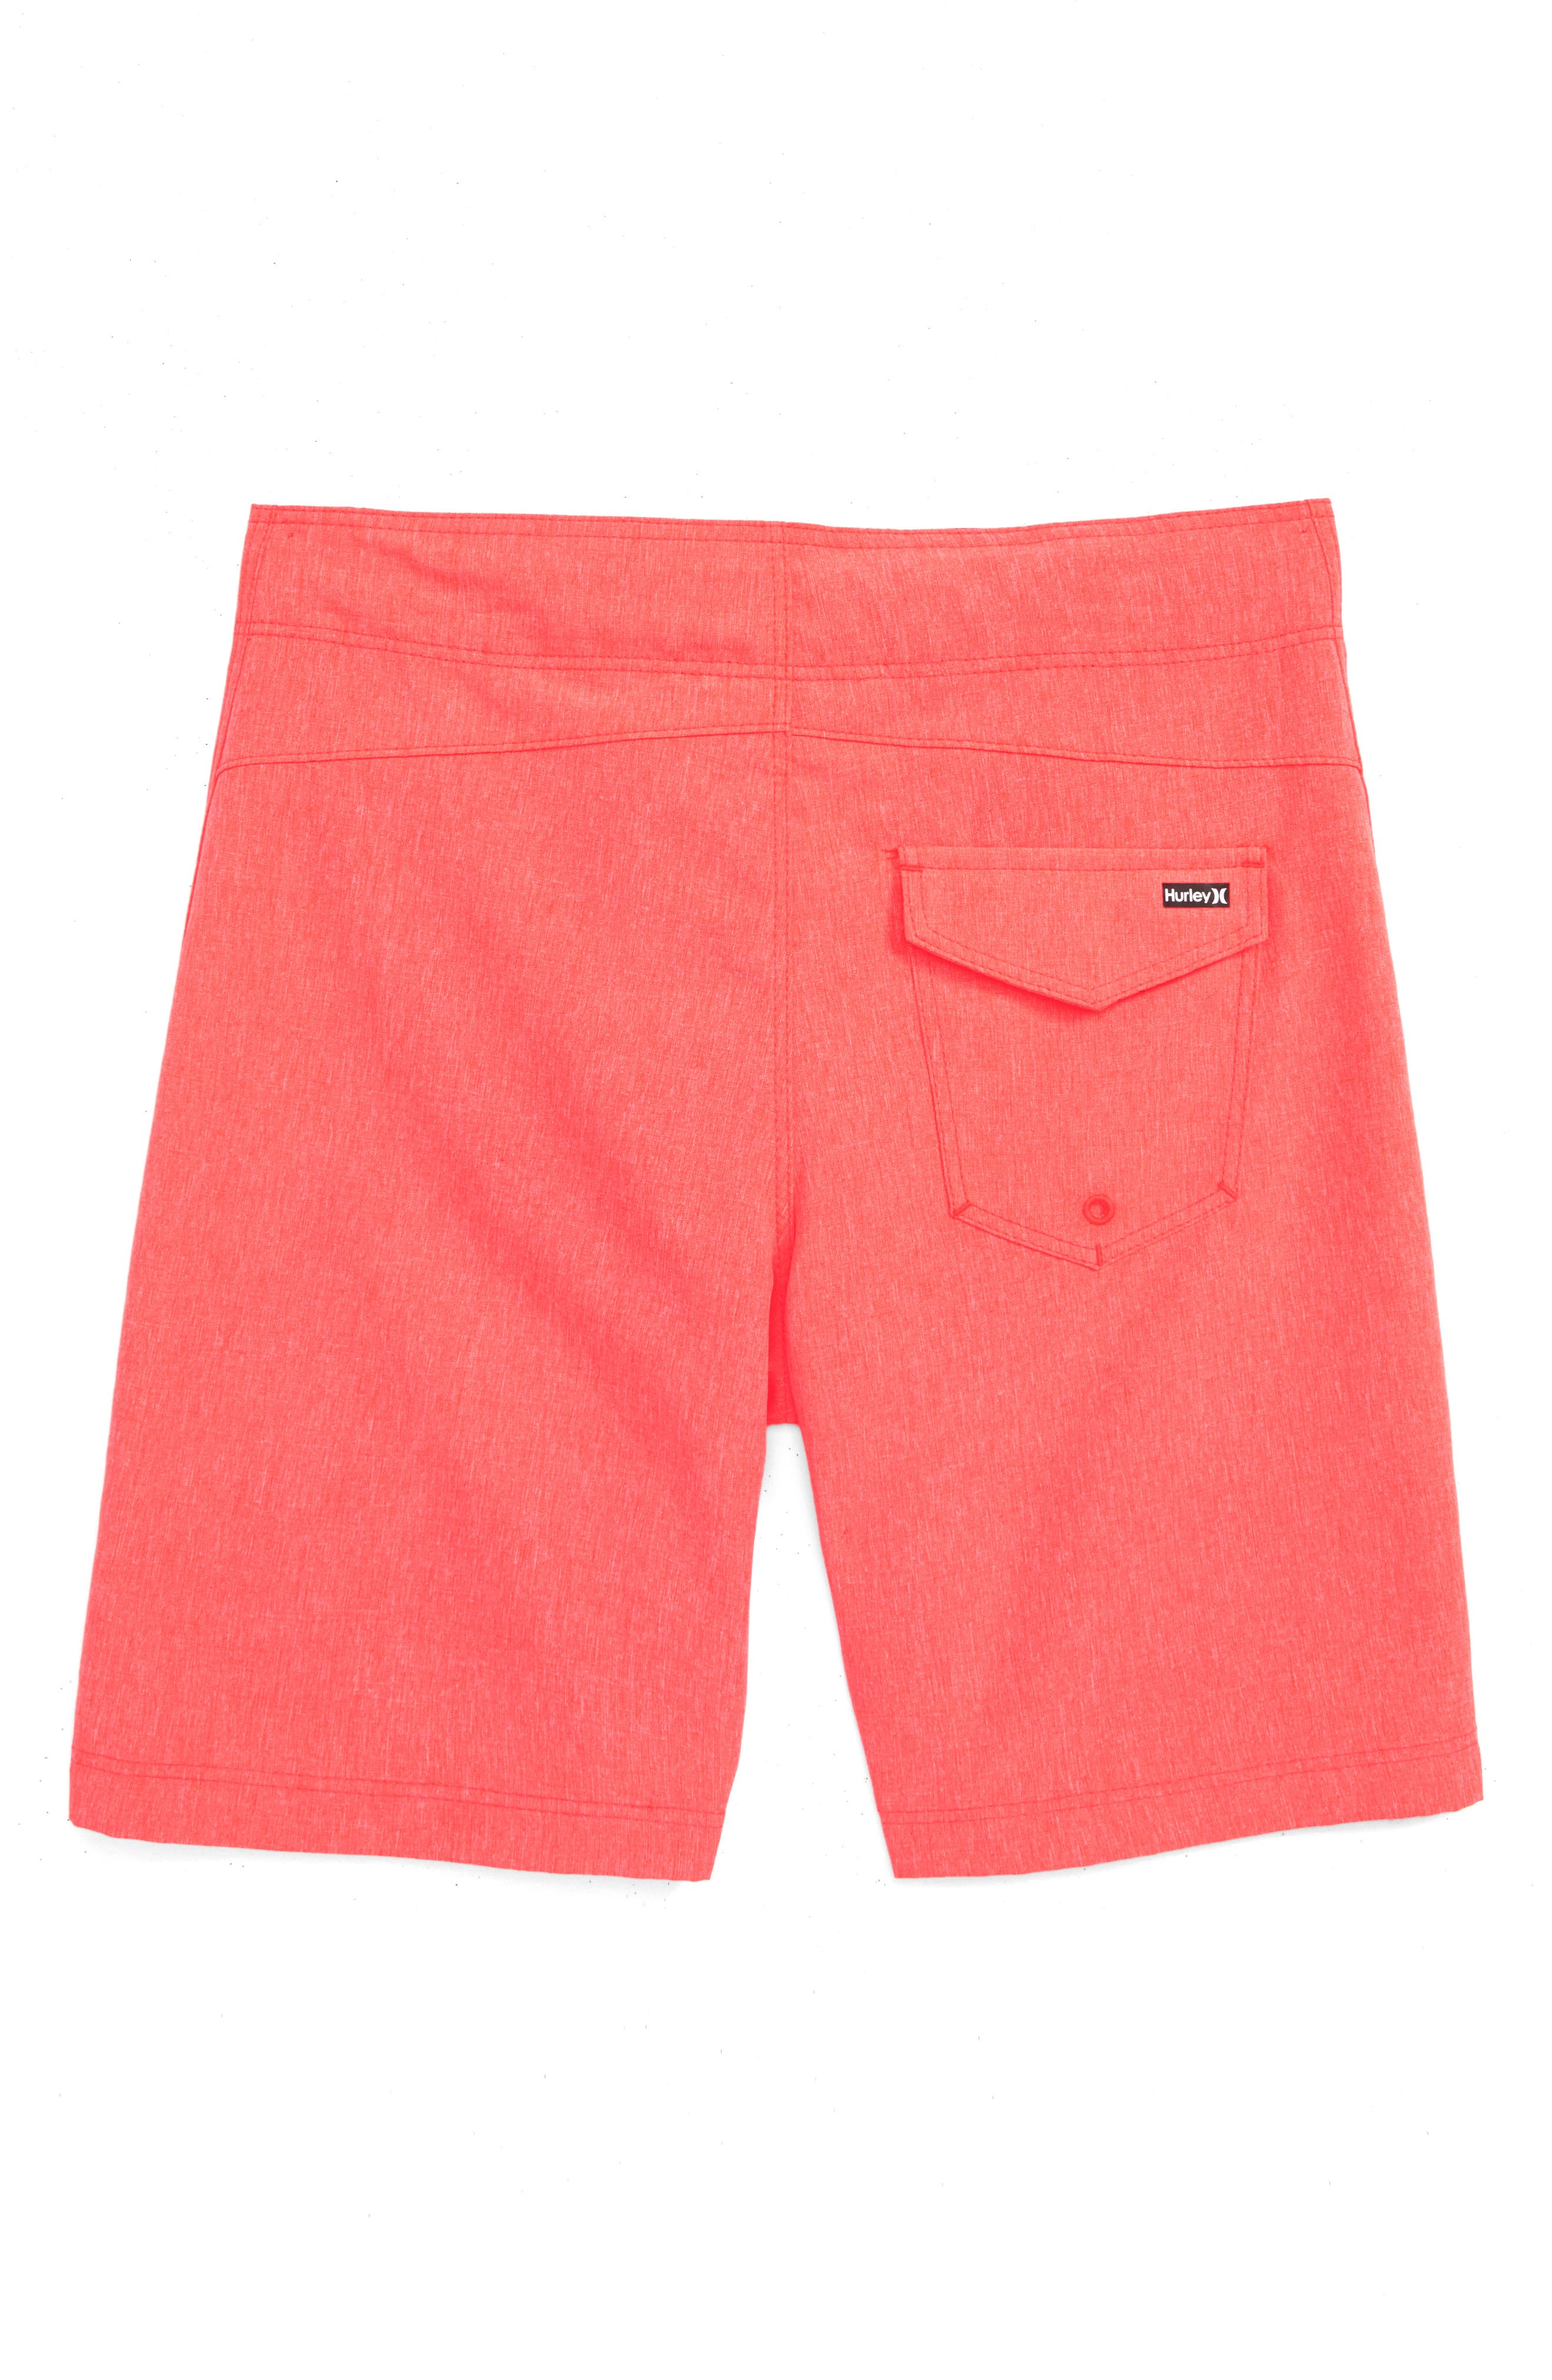 One and Only Dri-FIT Board Shorts,                             Alternate thumbnail 9, color,